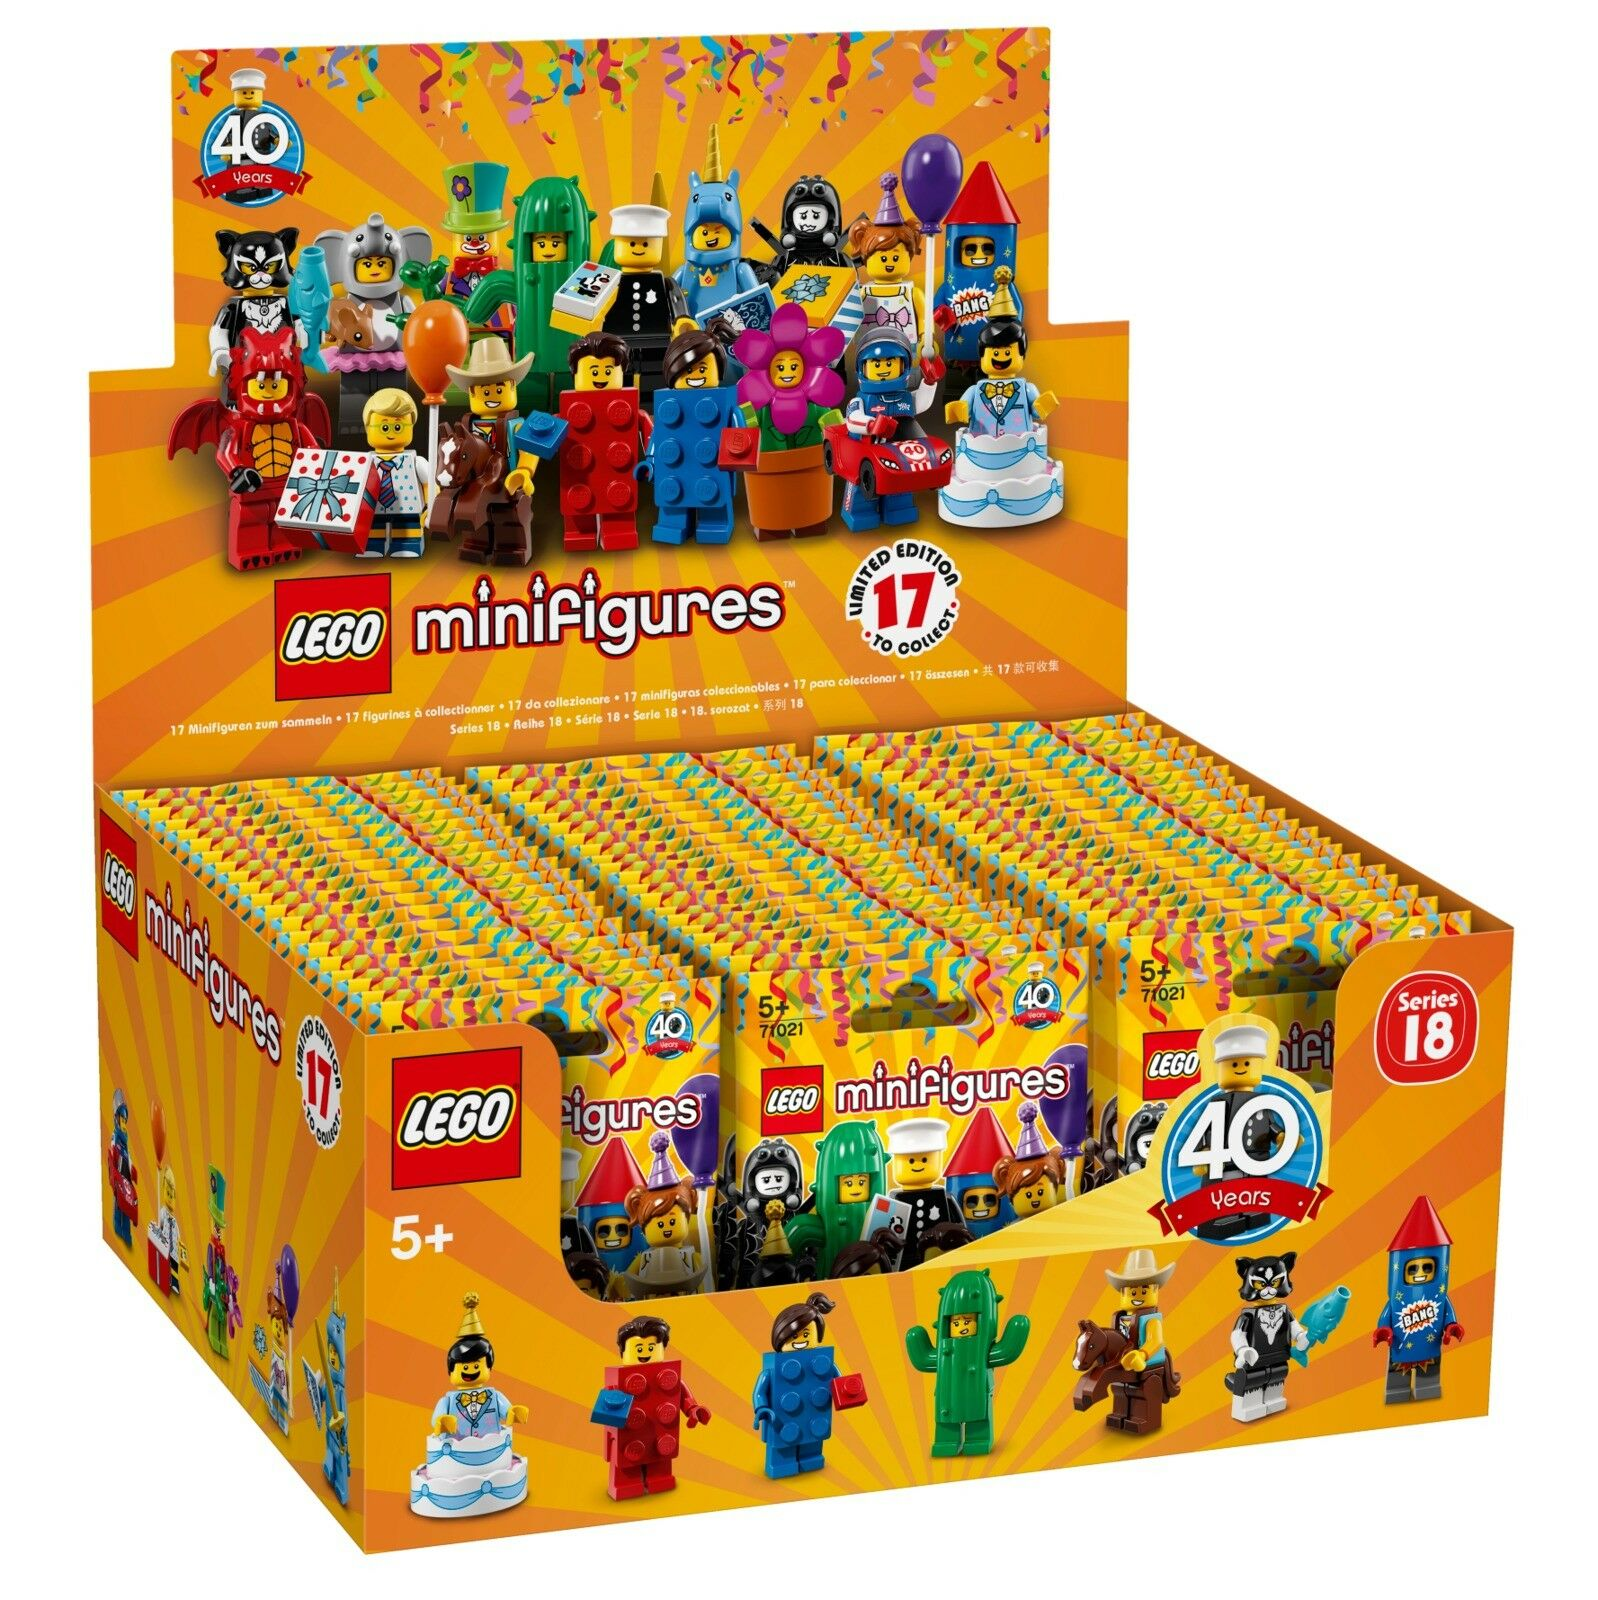 LEGO® 71021 Series 18 Minifigures - Factory Sealed Case of 60